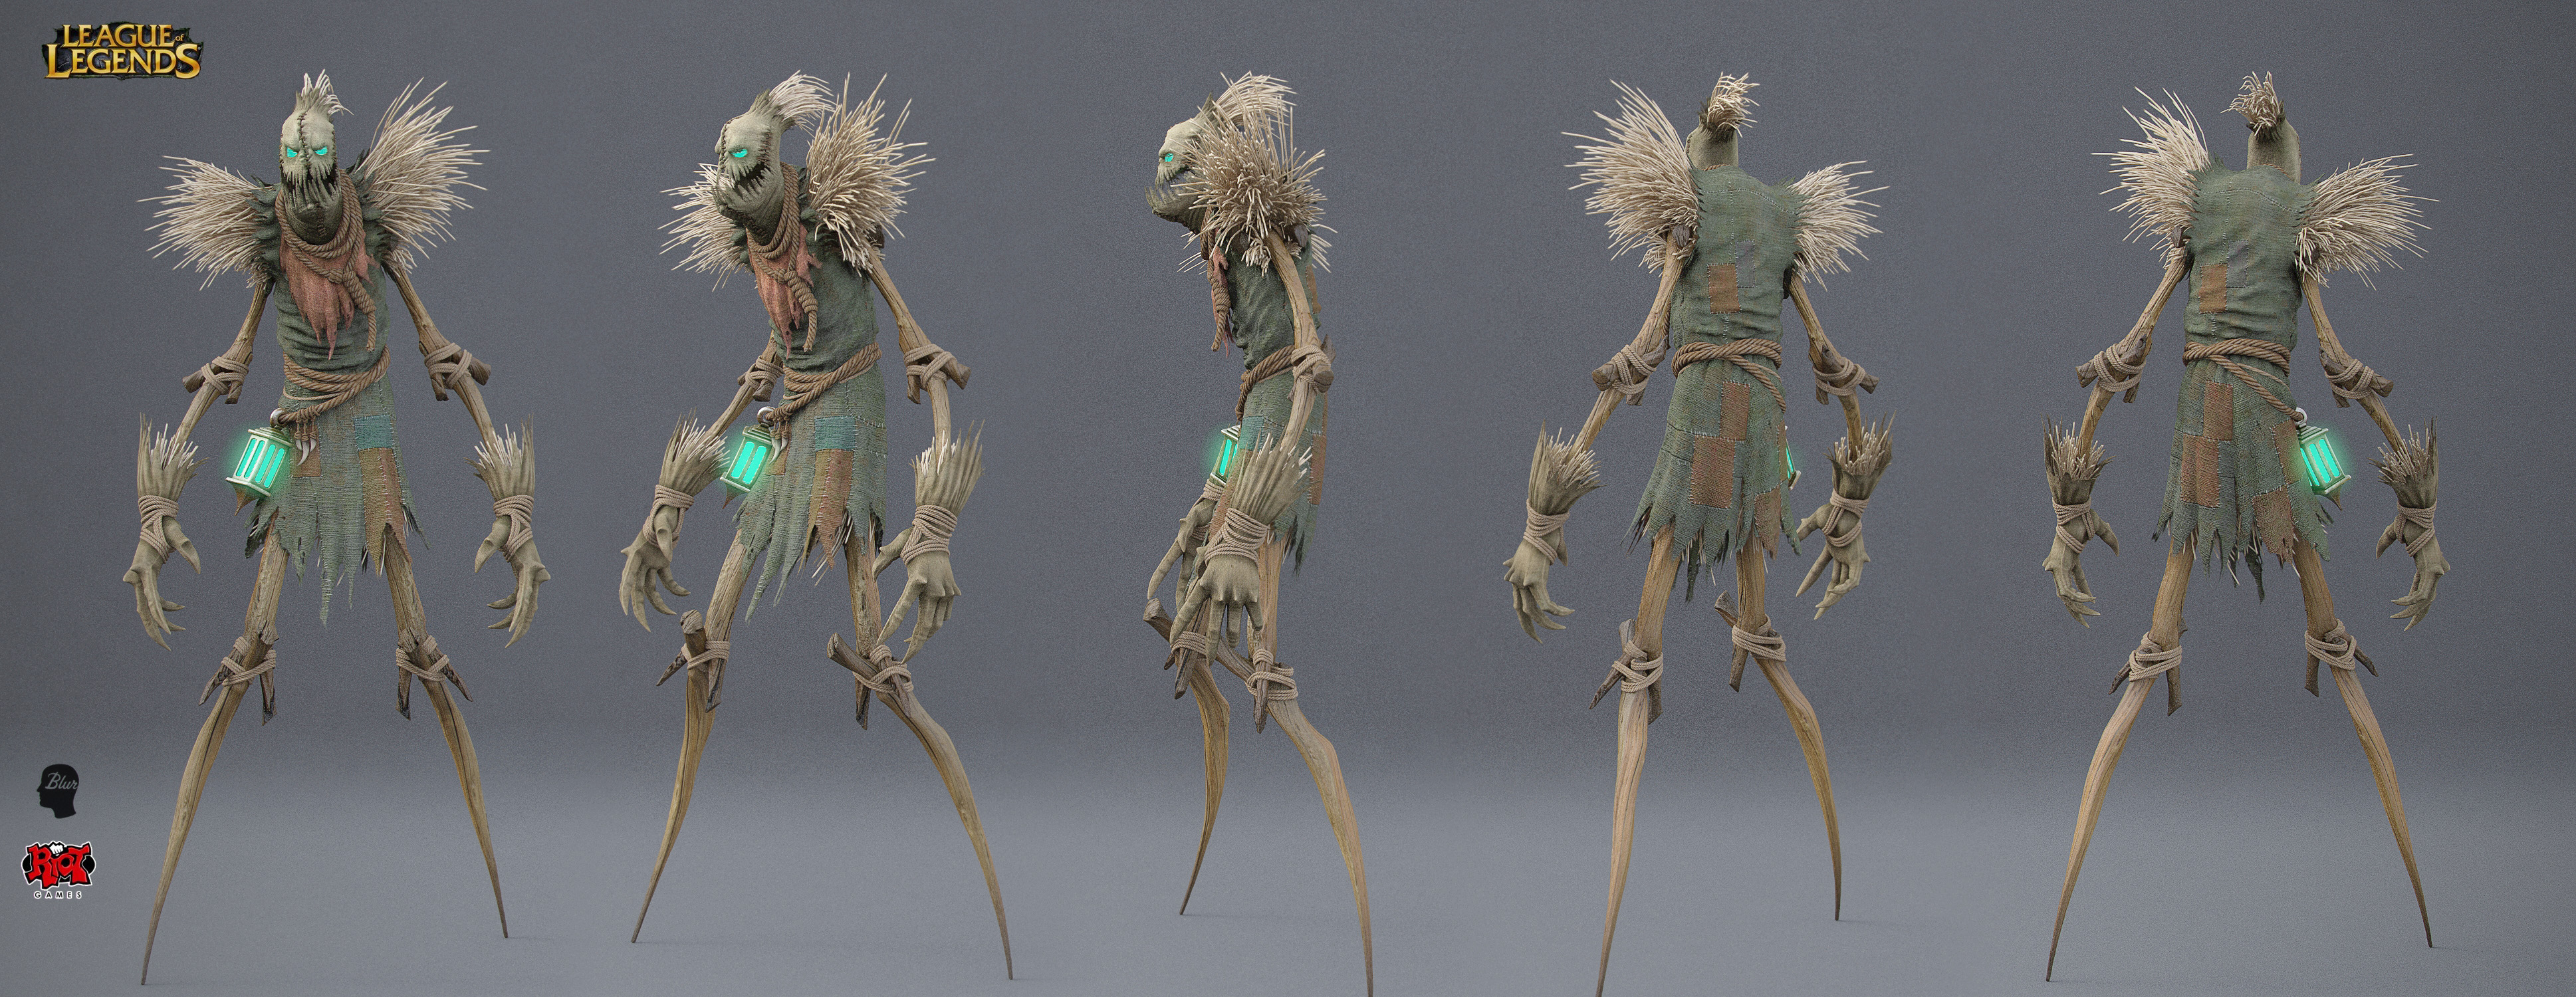 Fiddlesticks_texture